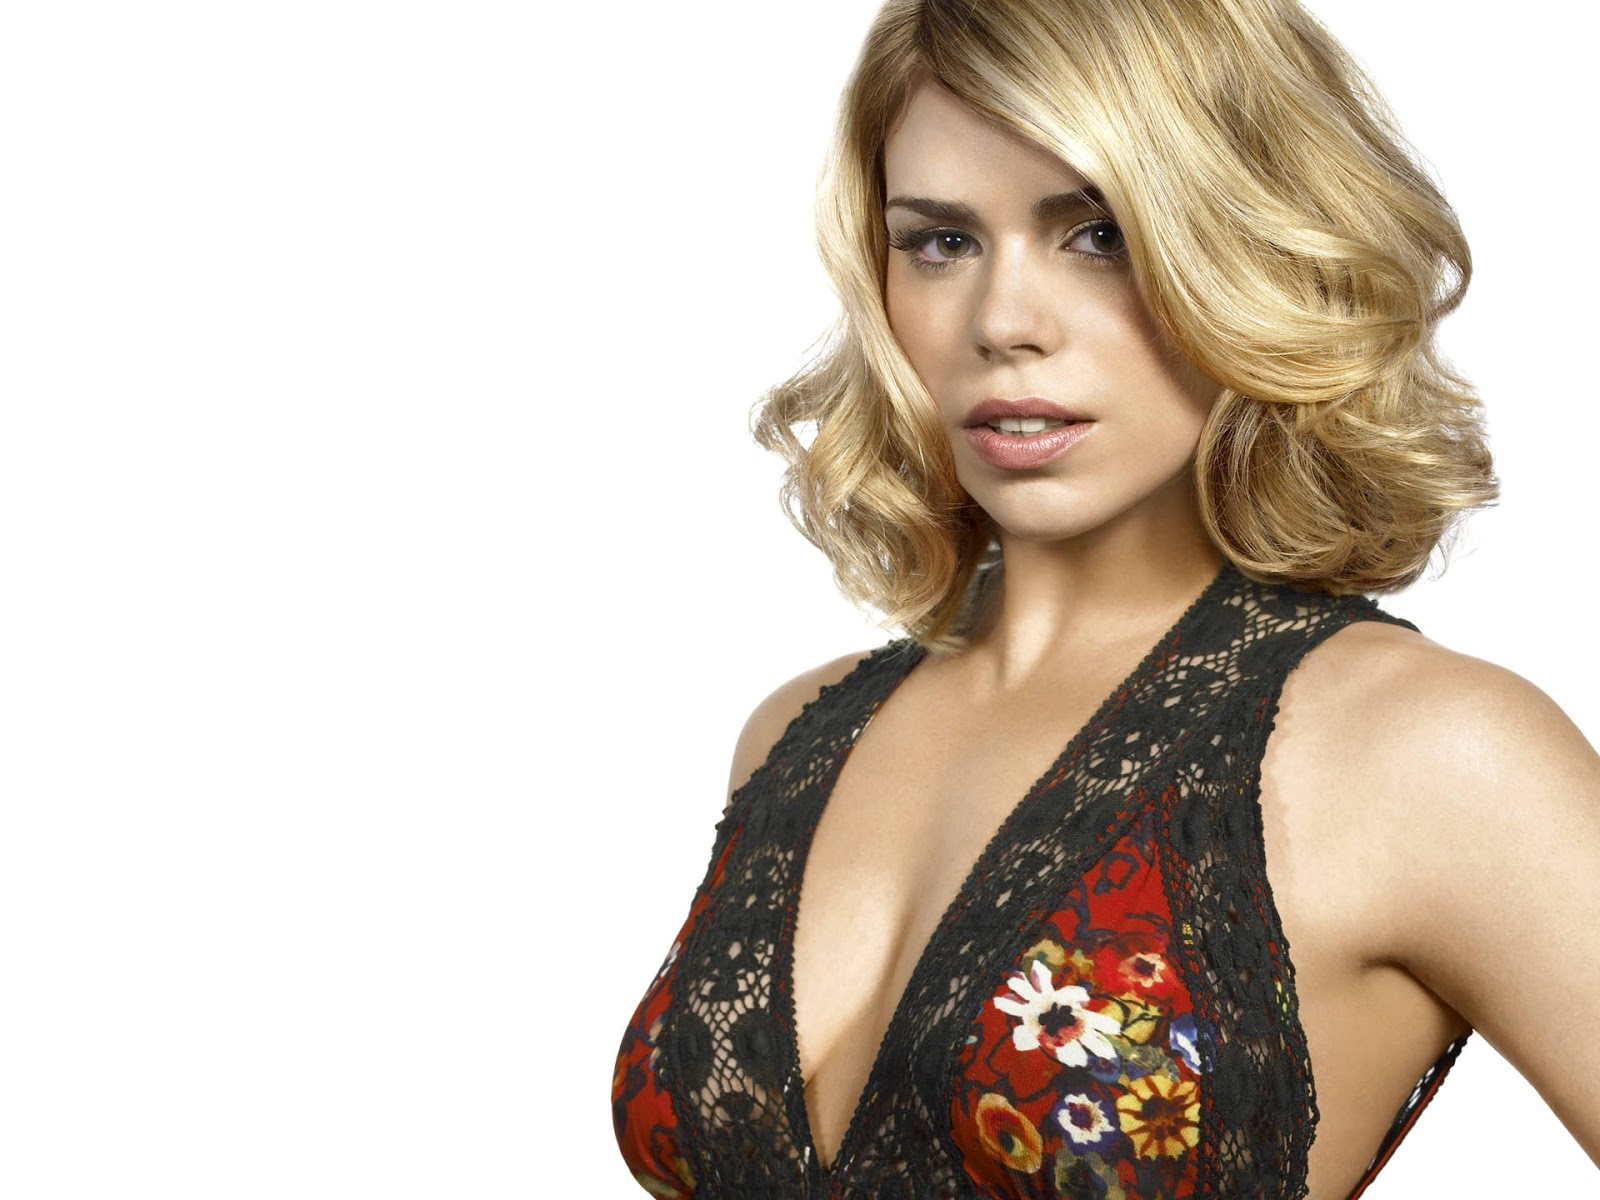 Forum on this topic: Timothy Spall (born 1957), billie-piper-born-1982/